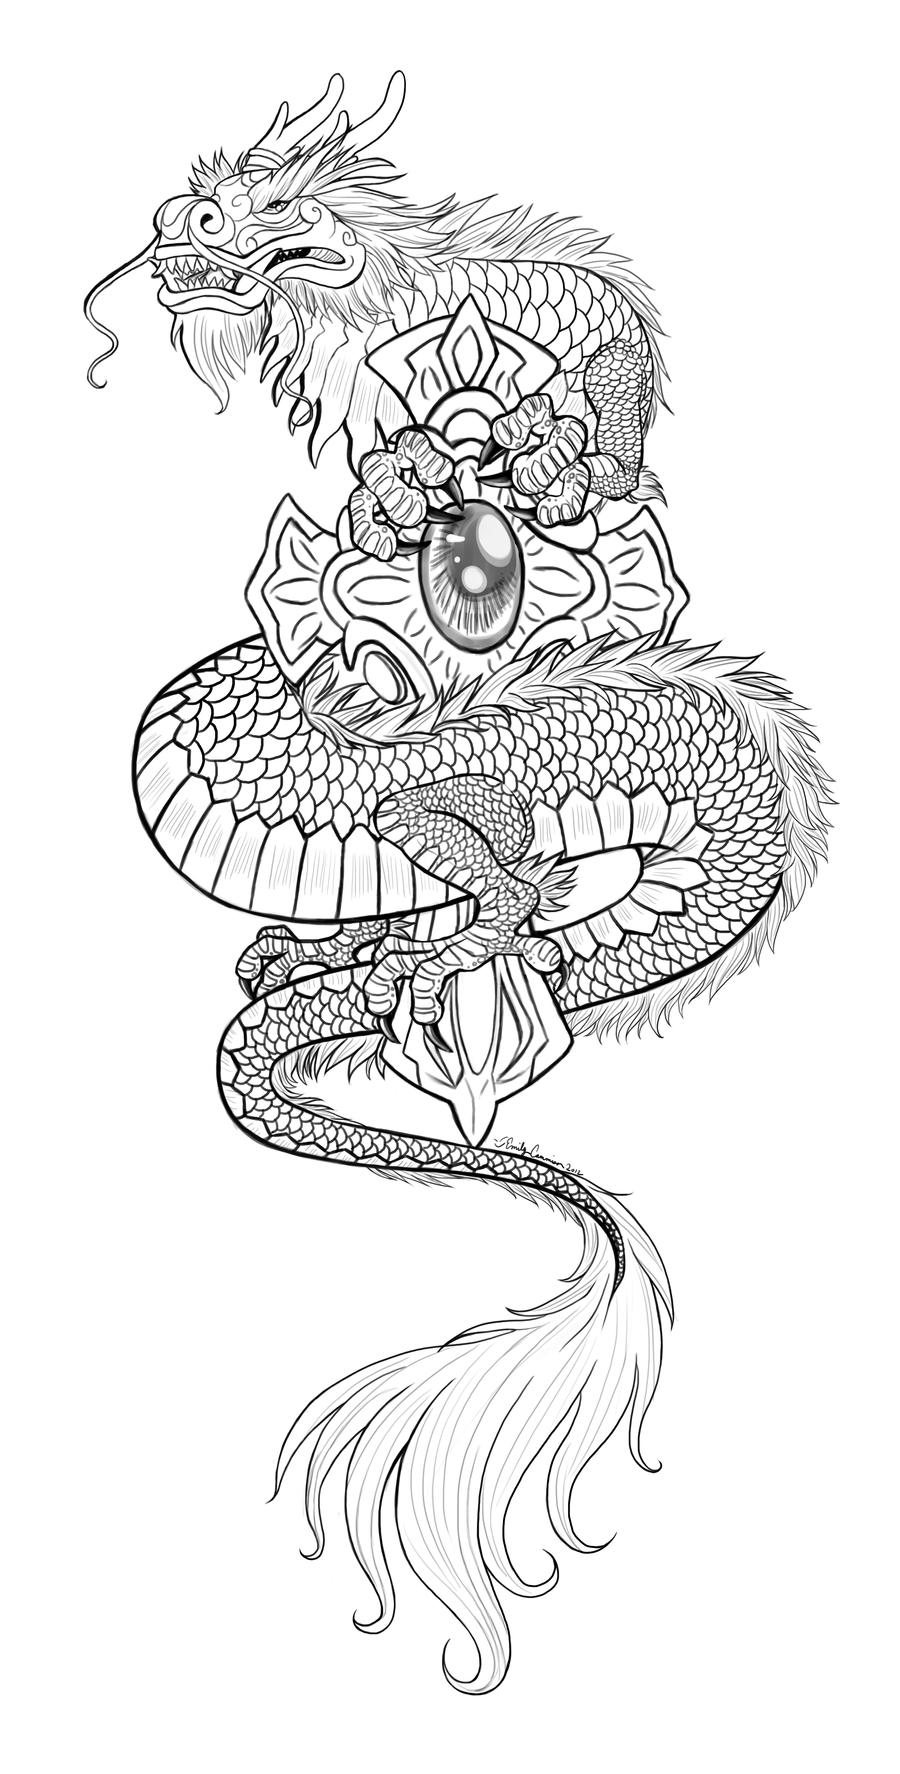 Tattoo Design Line Art : Dragon crucifix tattoo lineart by emilycammisa on deviantart